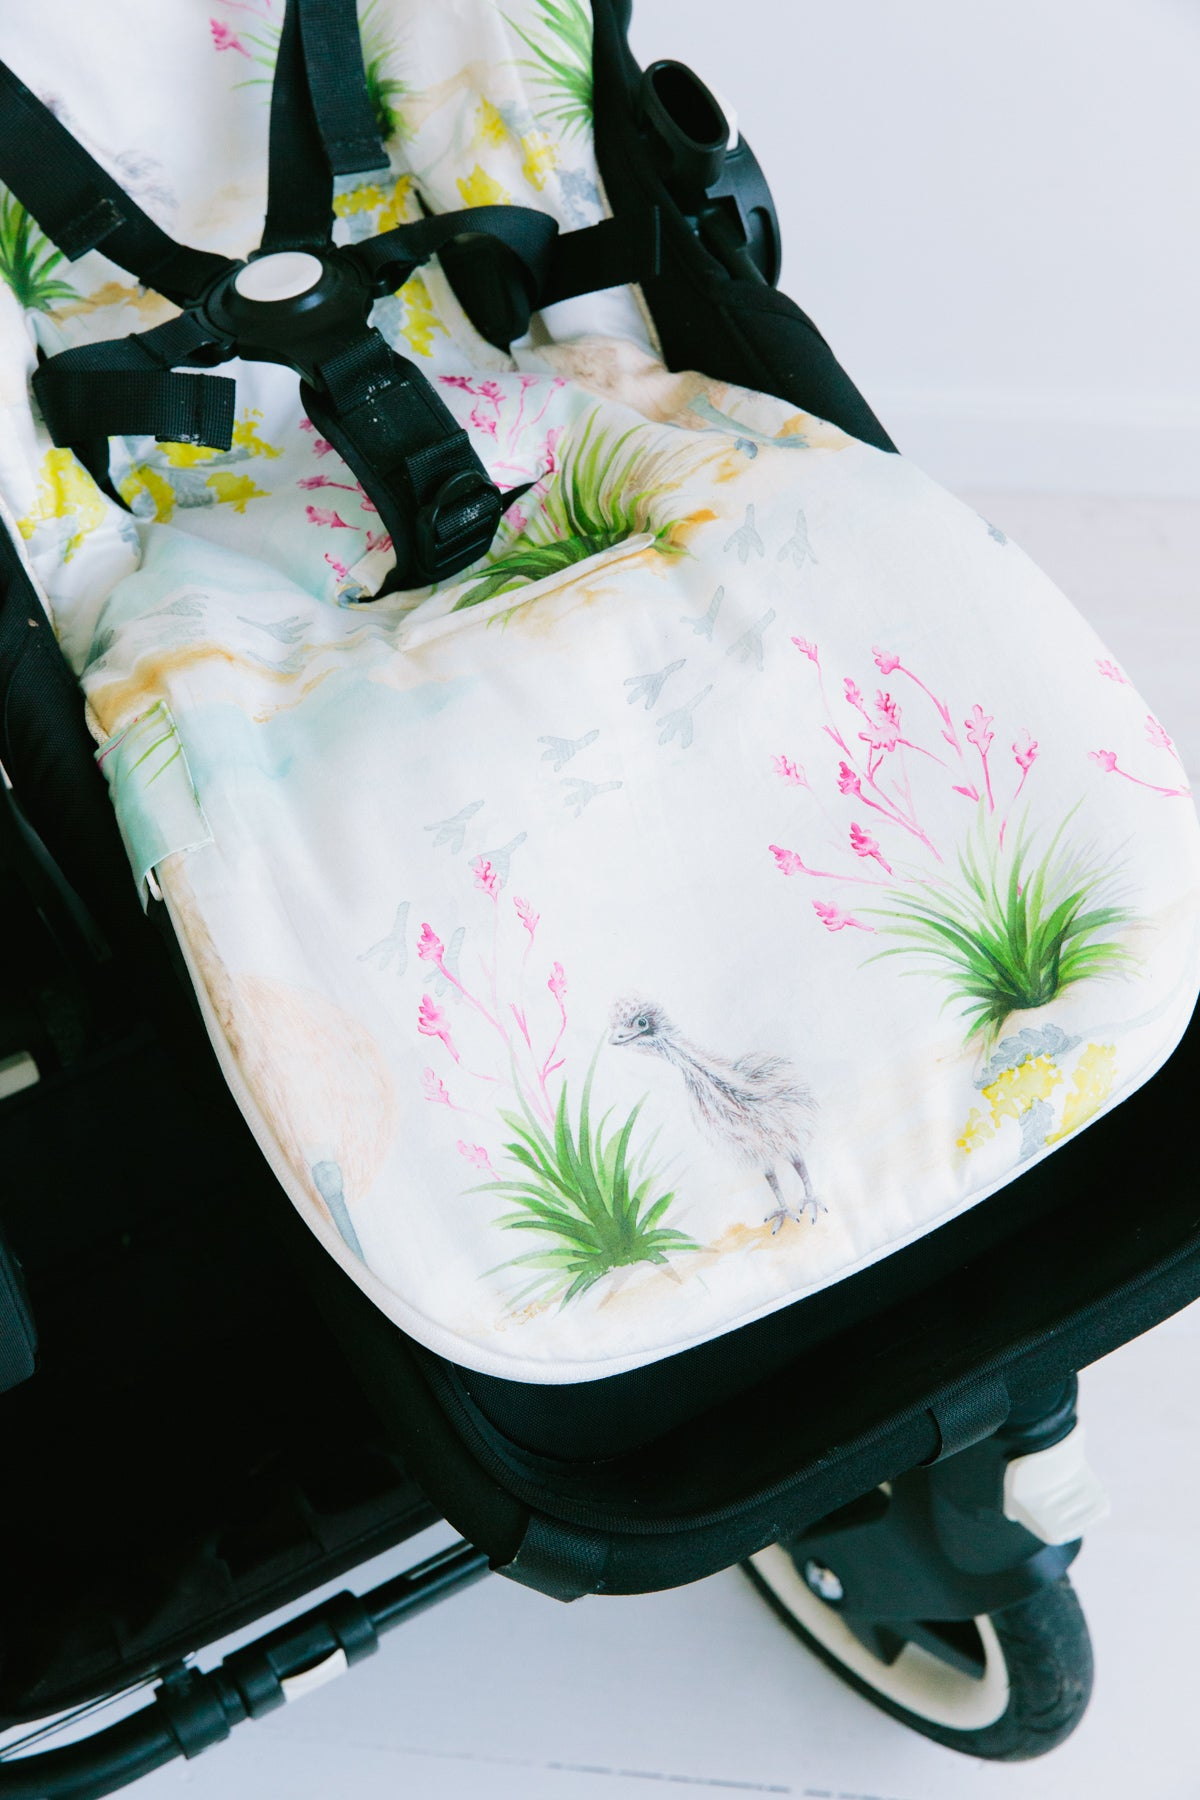 Cheeky Emu Universal Pram Liner. Premium quality, durable, washable - Marmalade Lion